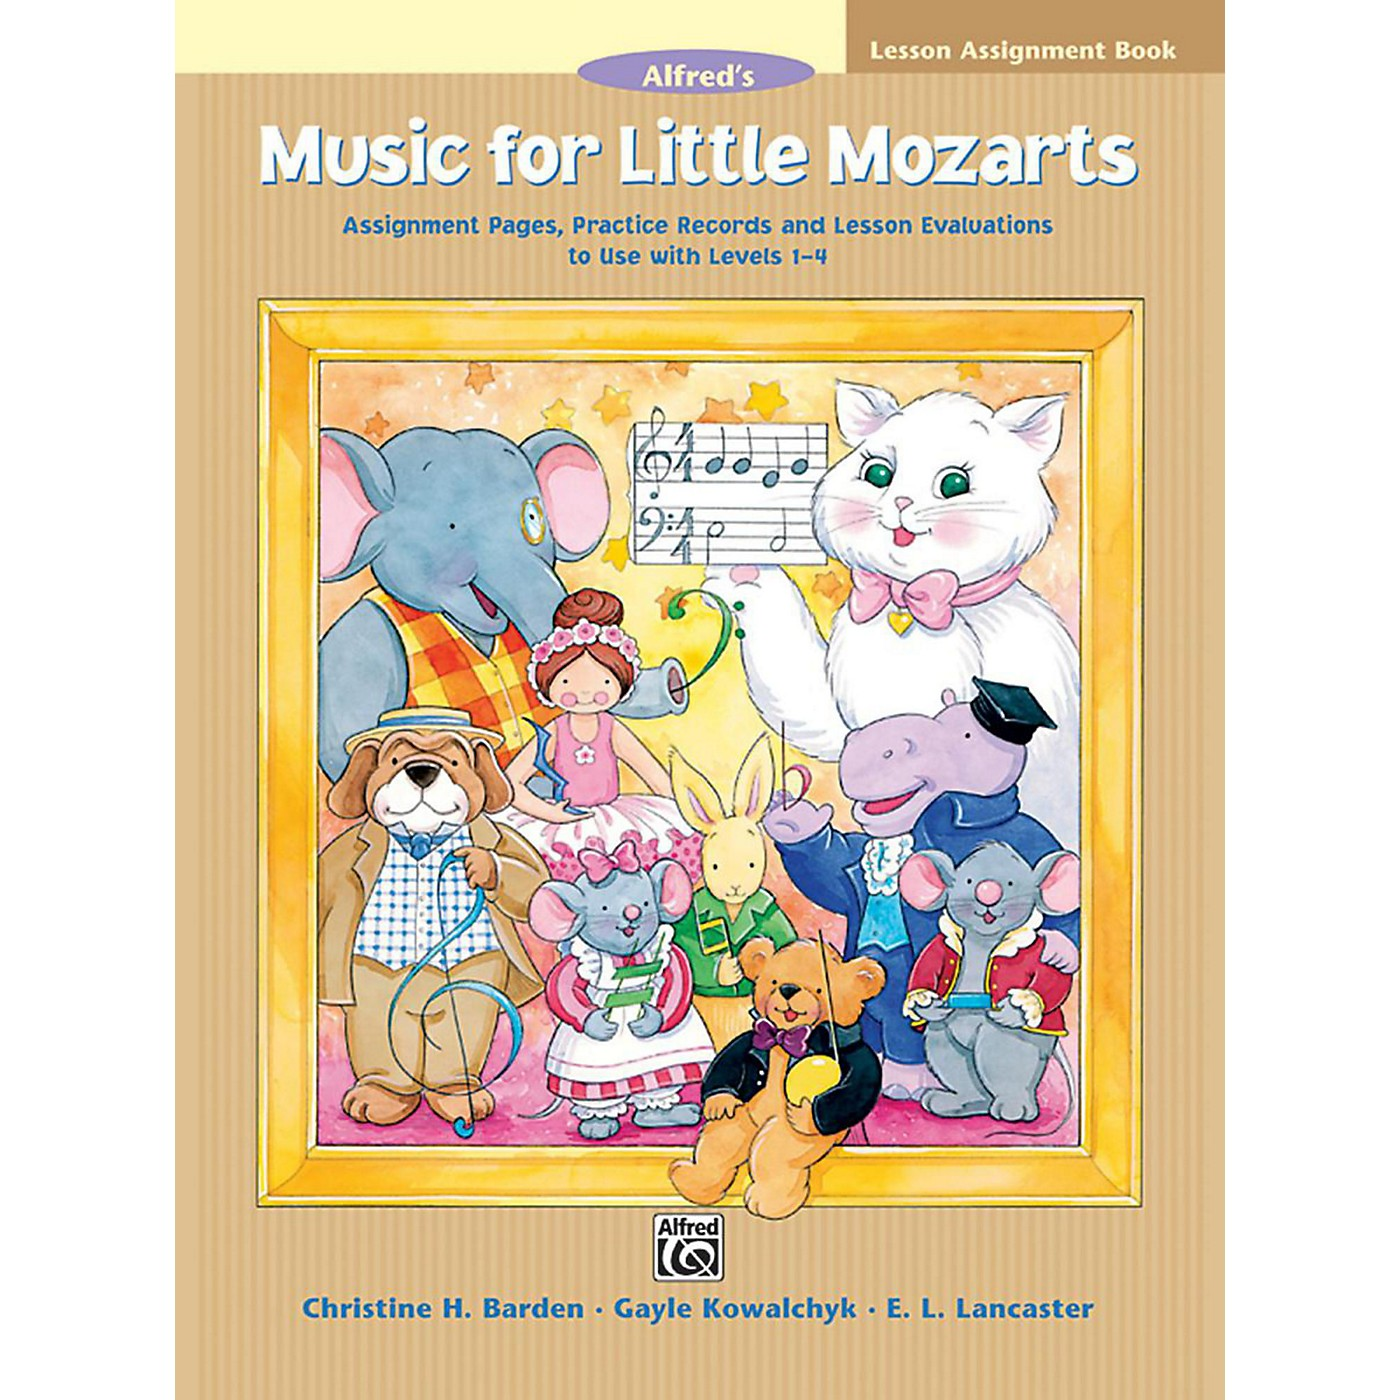 Alfred Music for Little Mozarts Lesson Assignment Book thumbnail